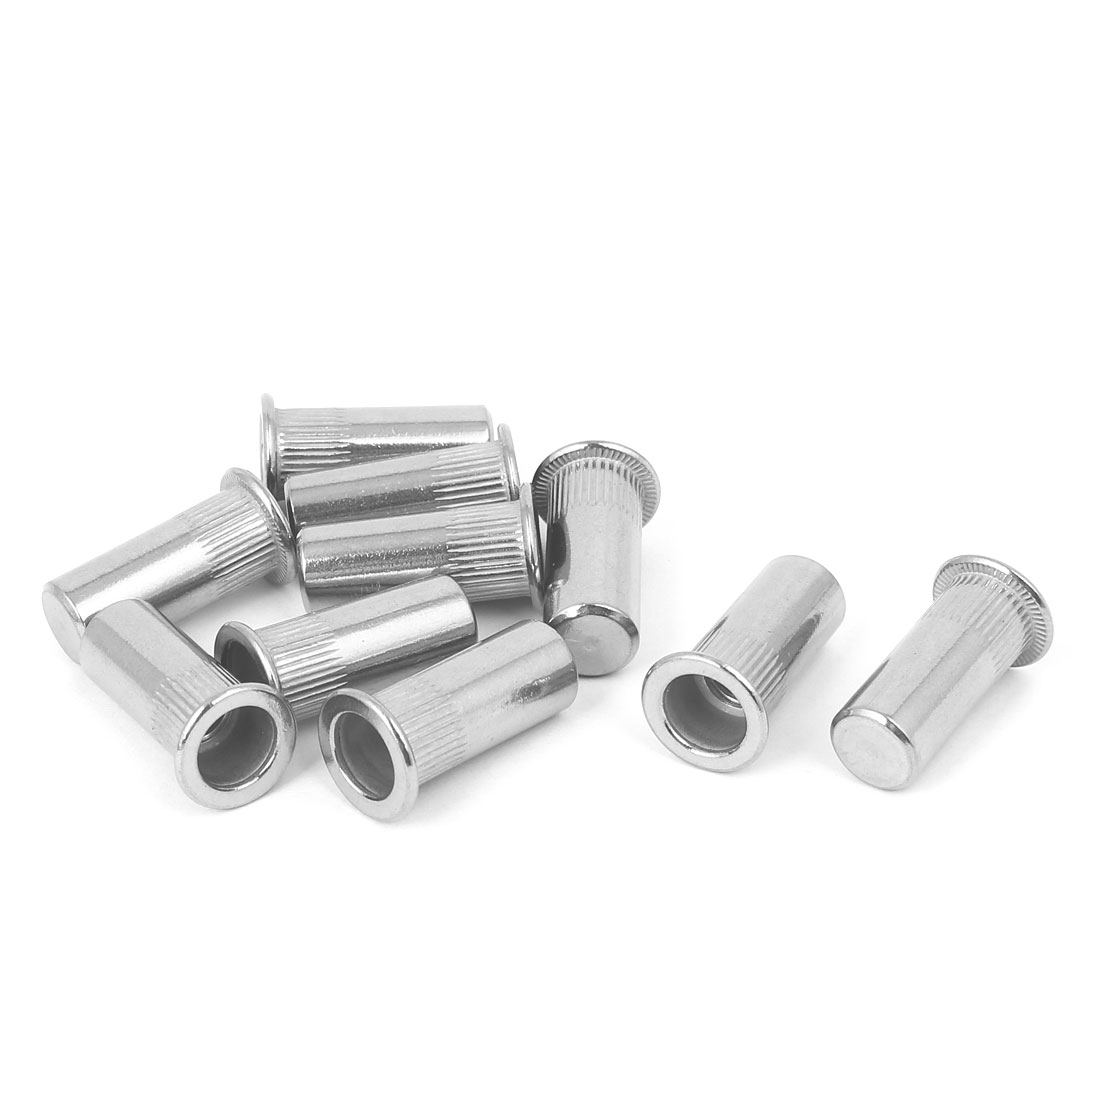 M8x27mm 304 Stainless Steel Straight Knurled Closed End Rivet Nut Fastener 10pcs